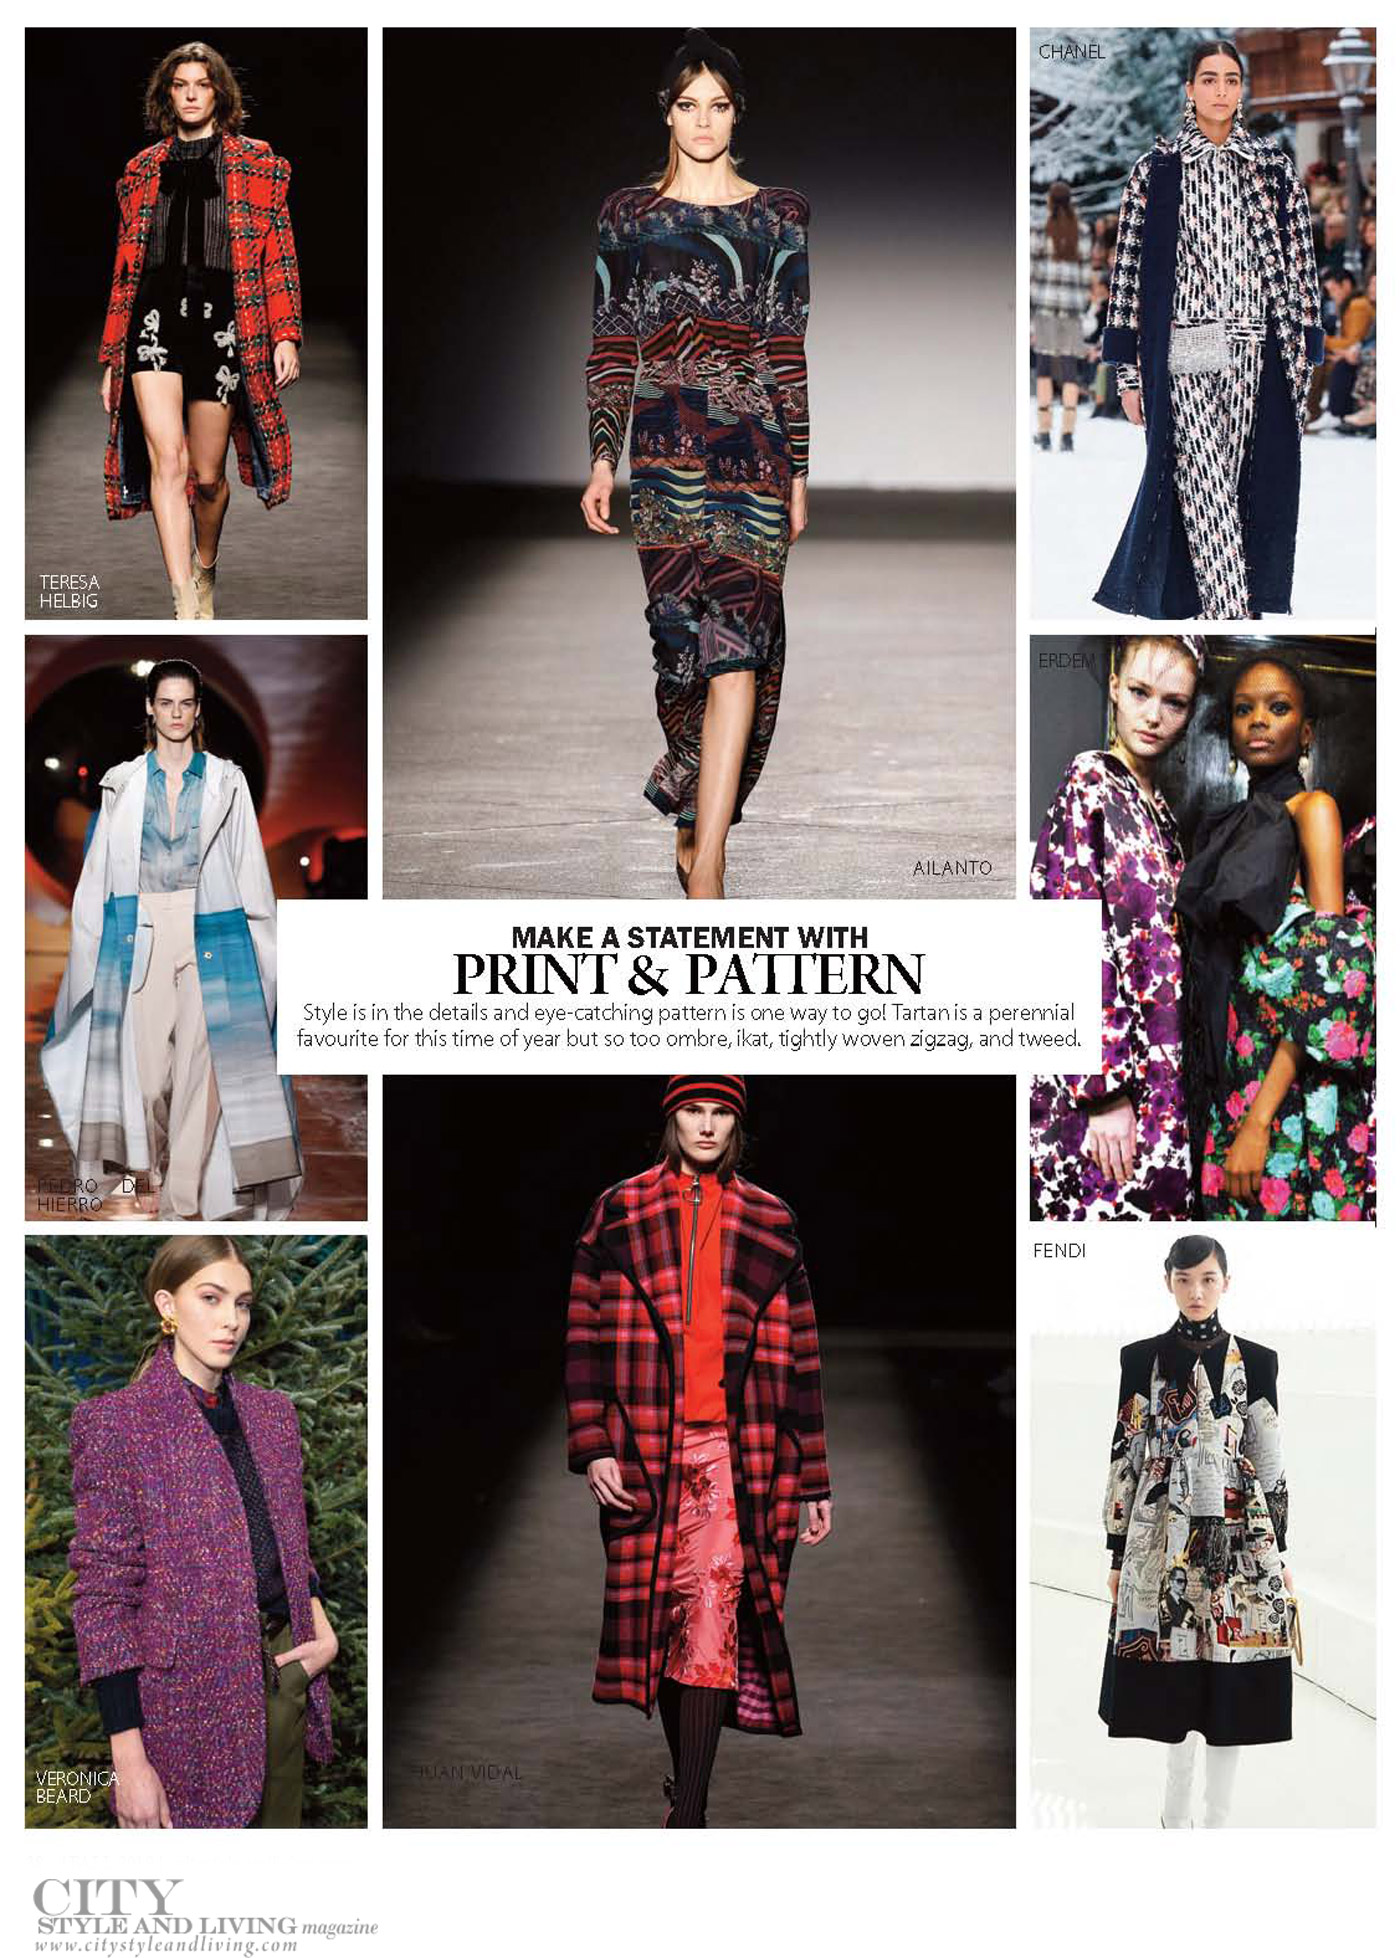 City Style and Living Magazine Fashion Fall 2019 print and pattern